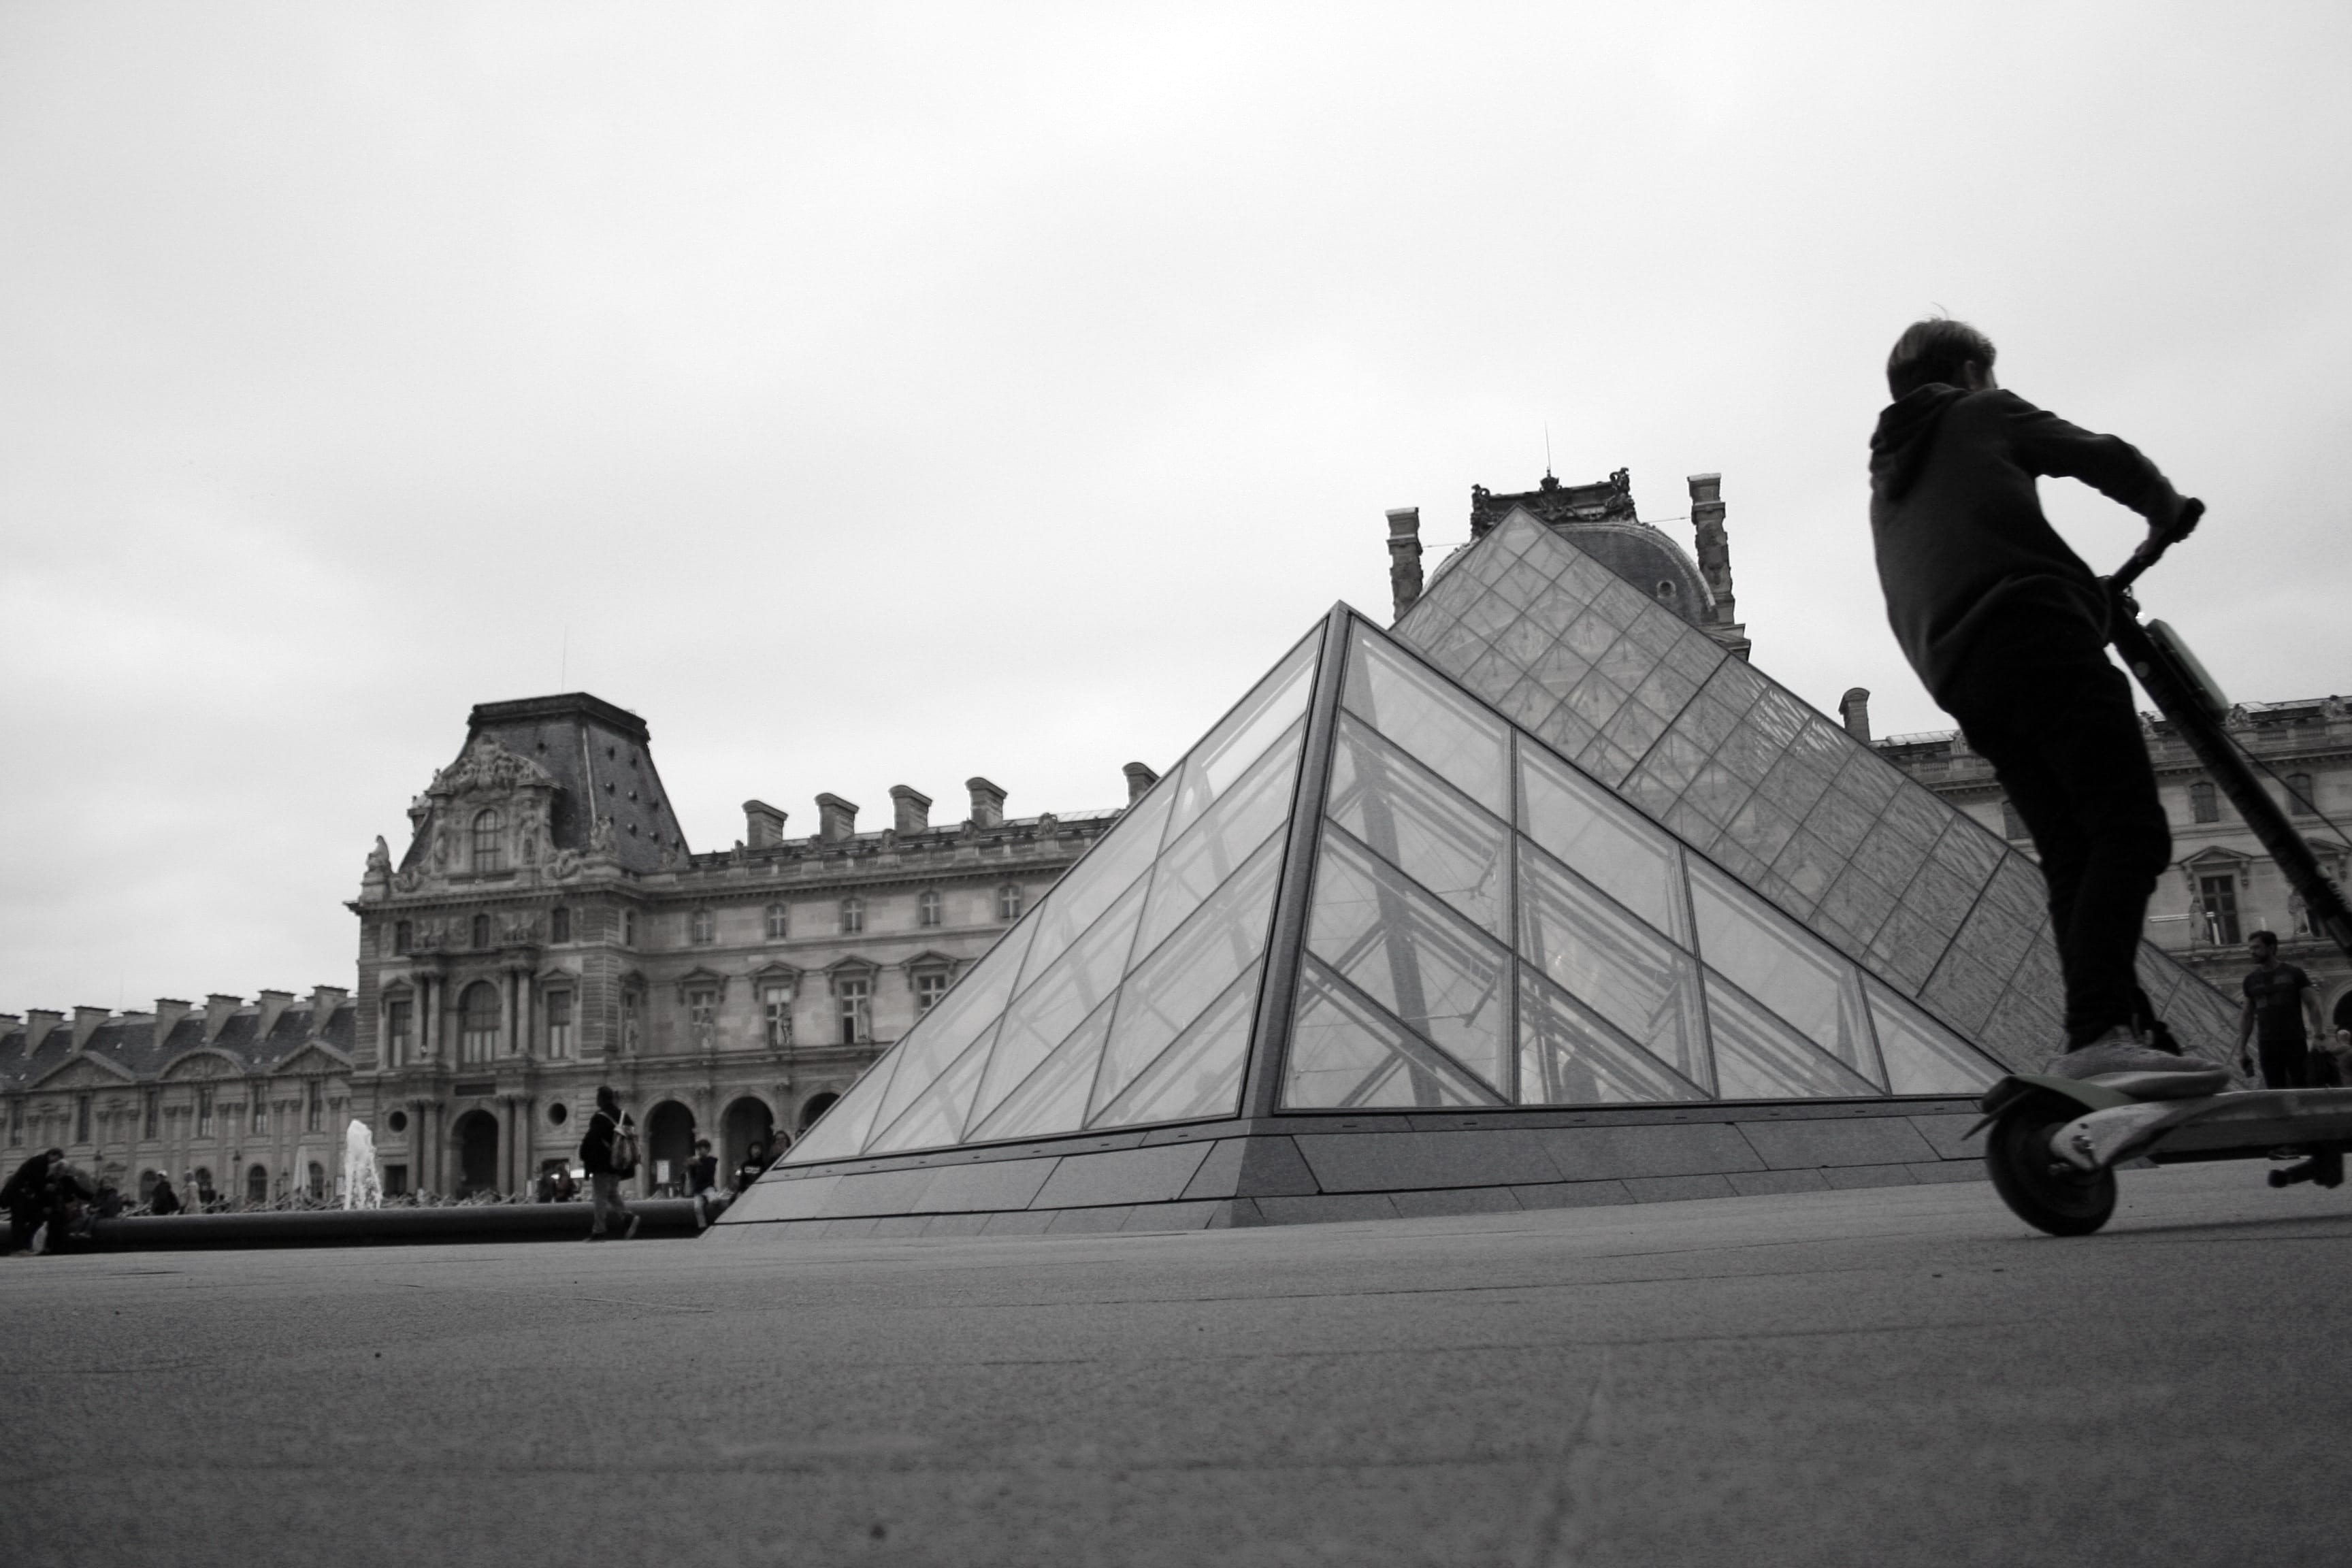 Man riding a Lime electric scooter outside the Louvre in Paris, France; image by Timothy K, via unsplash.com.